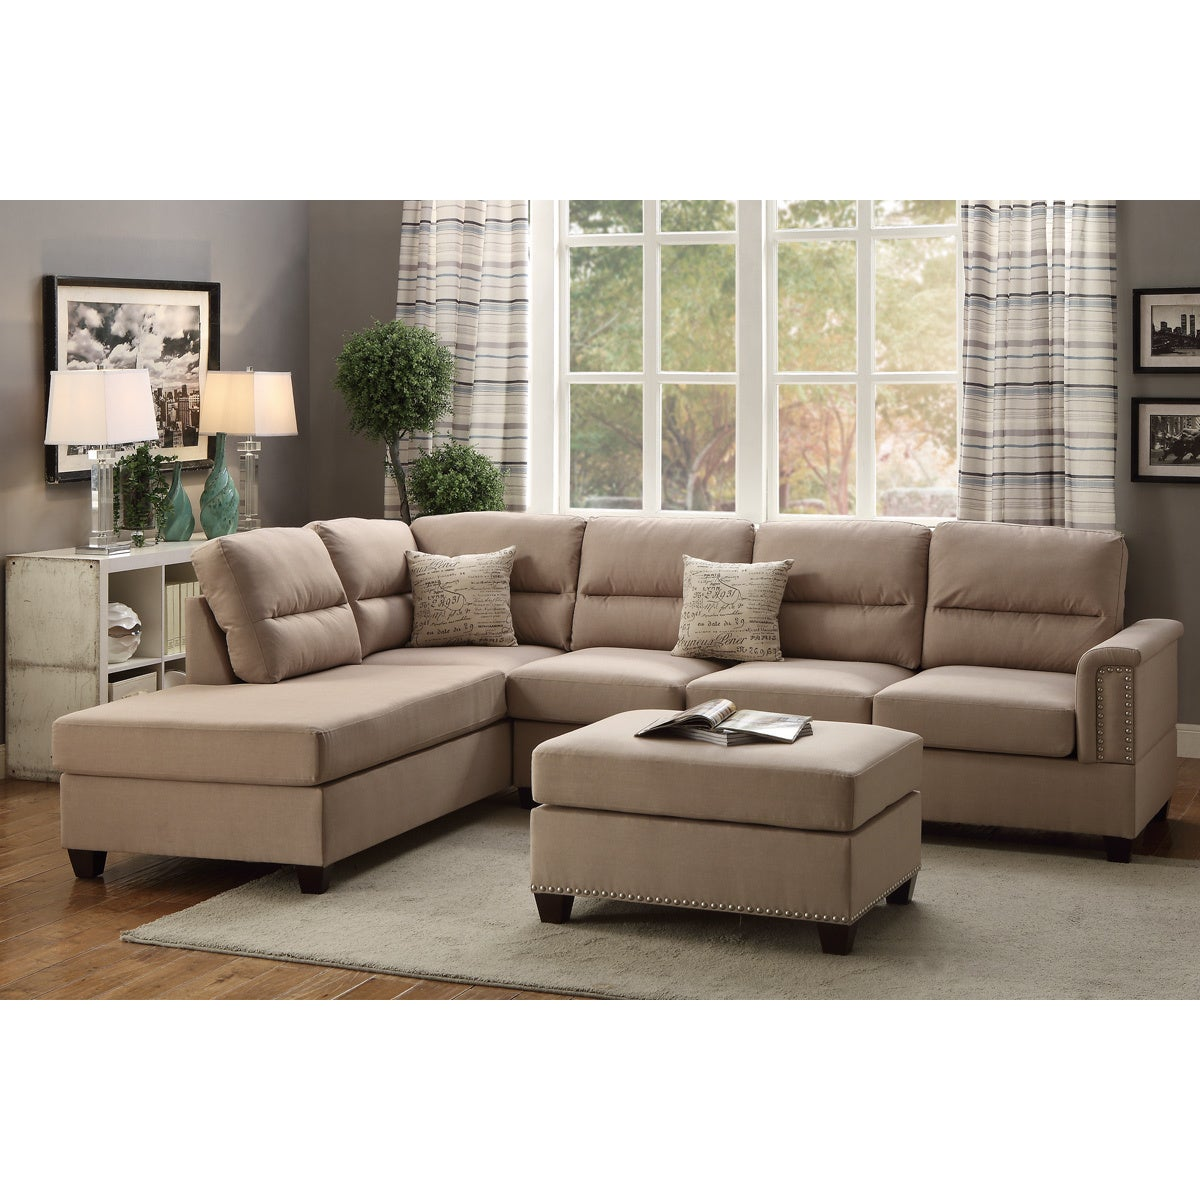 loading sectional zoom sofa showroom categories productdetails poundex furniture catalogsite bobkona